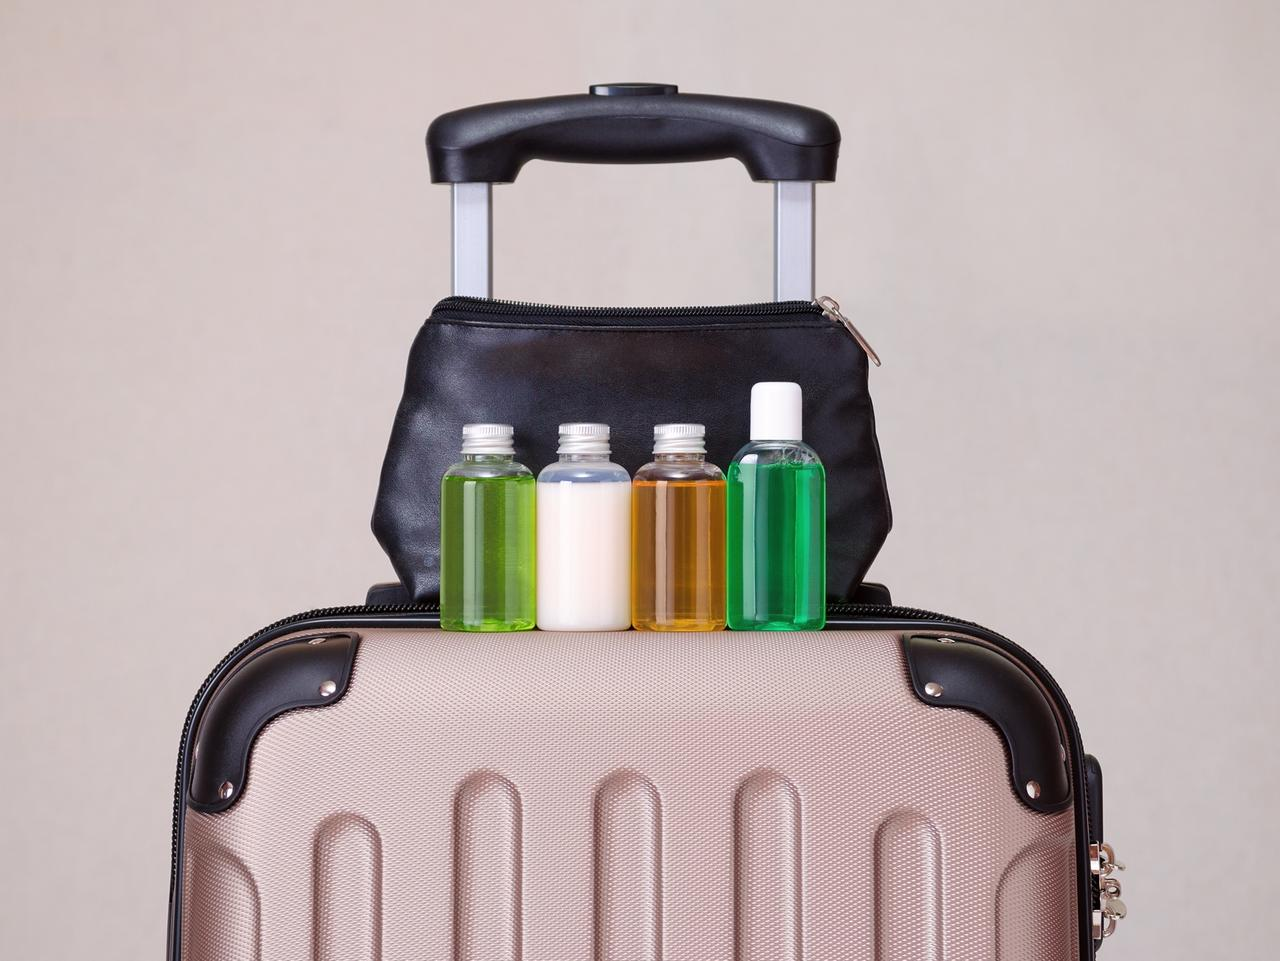 travel toiletries, small plastic bottles of hygiene products on the suitcase